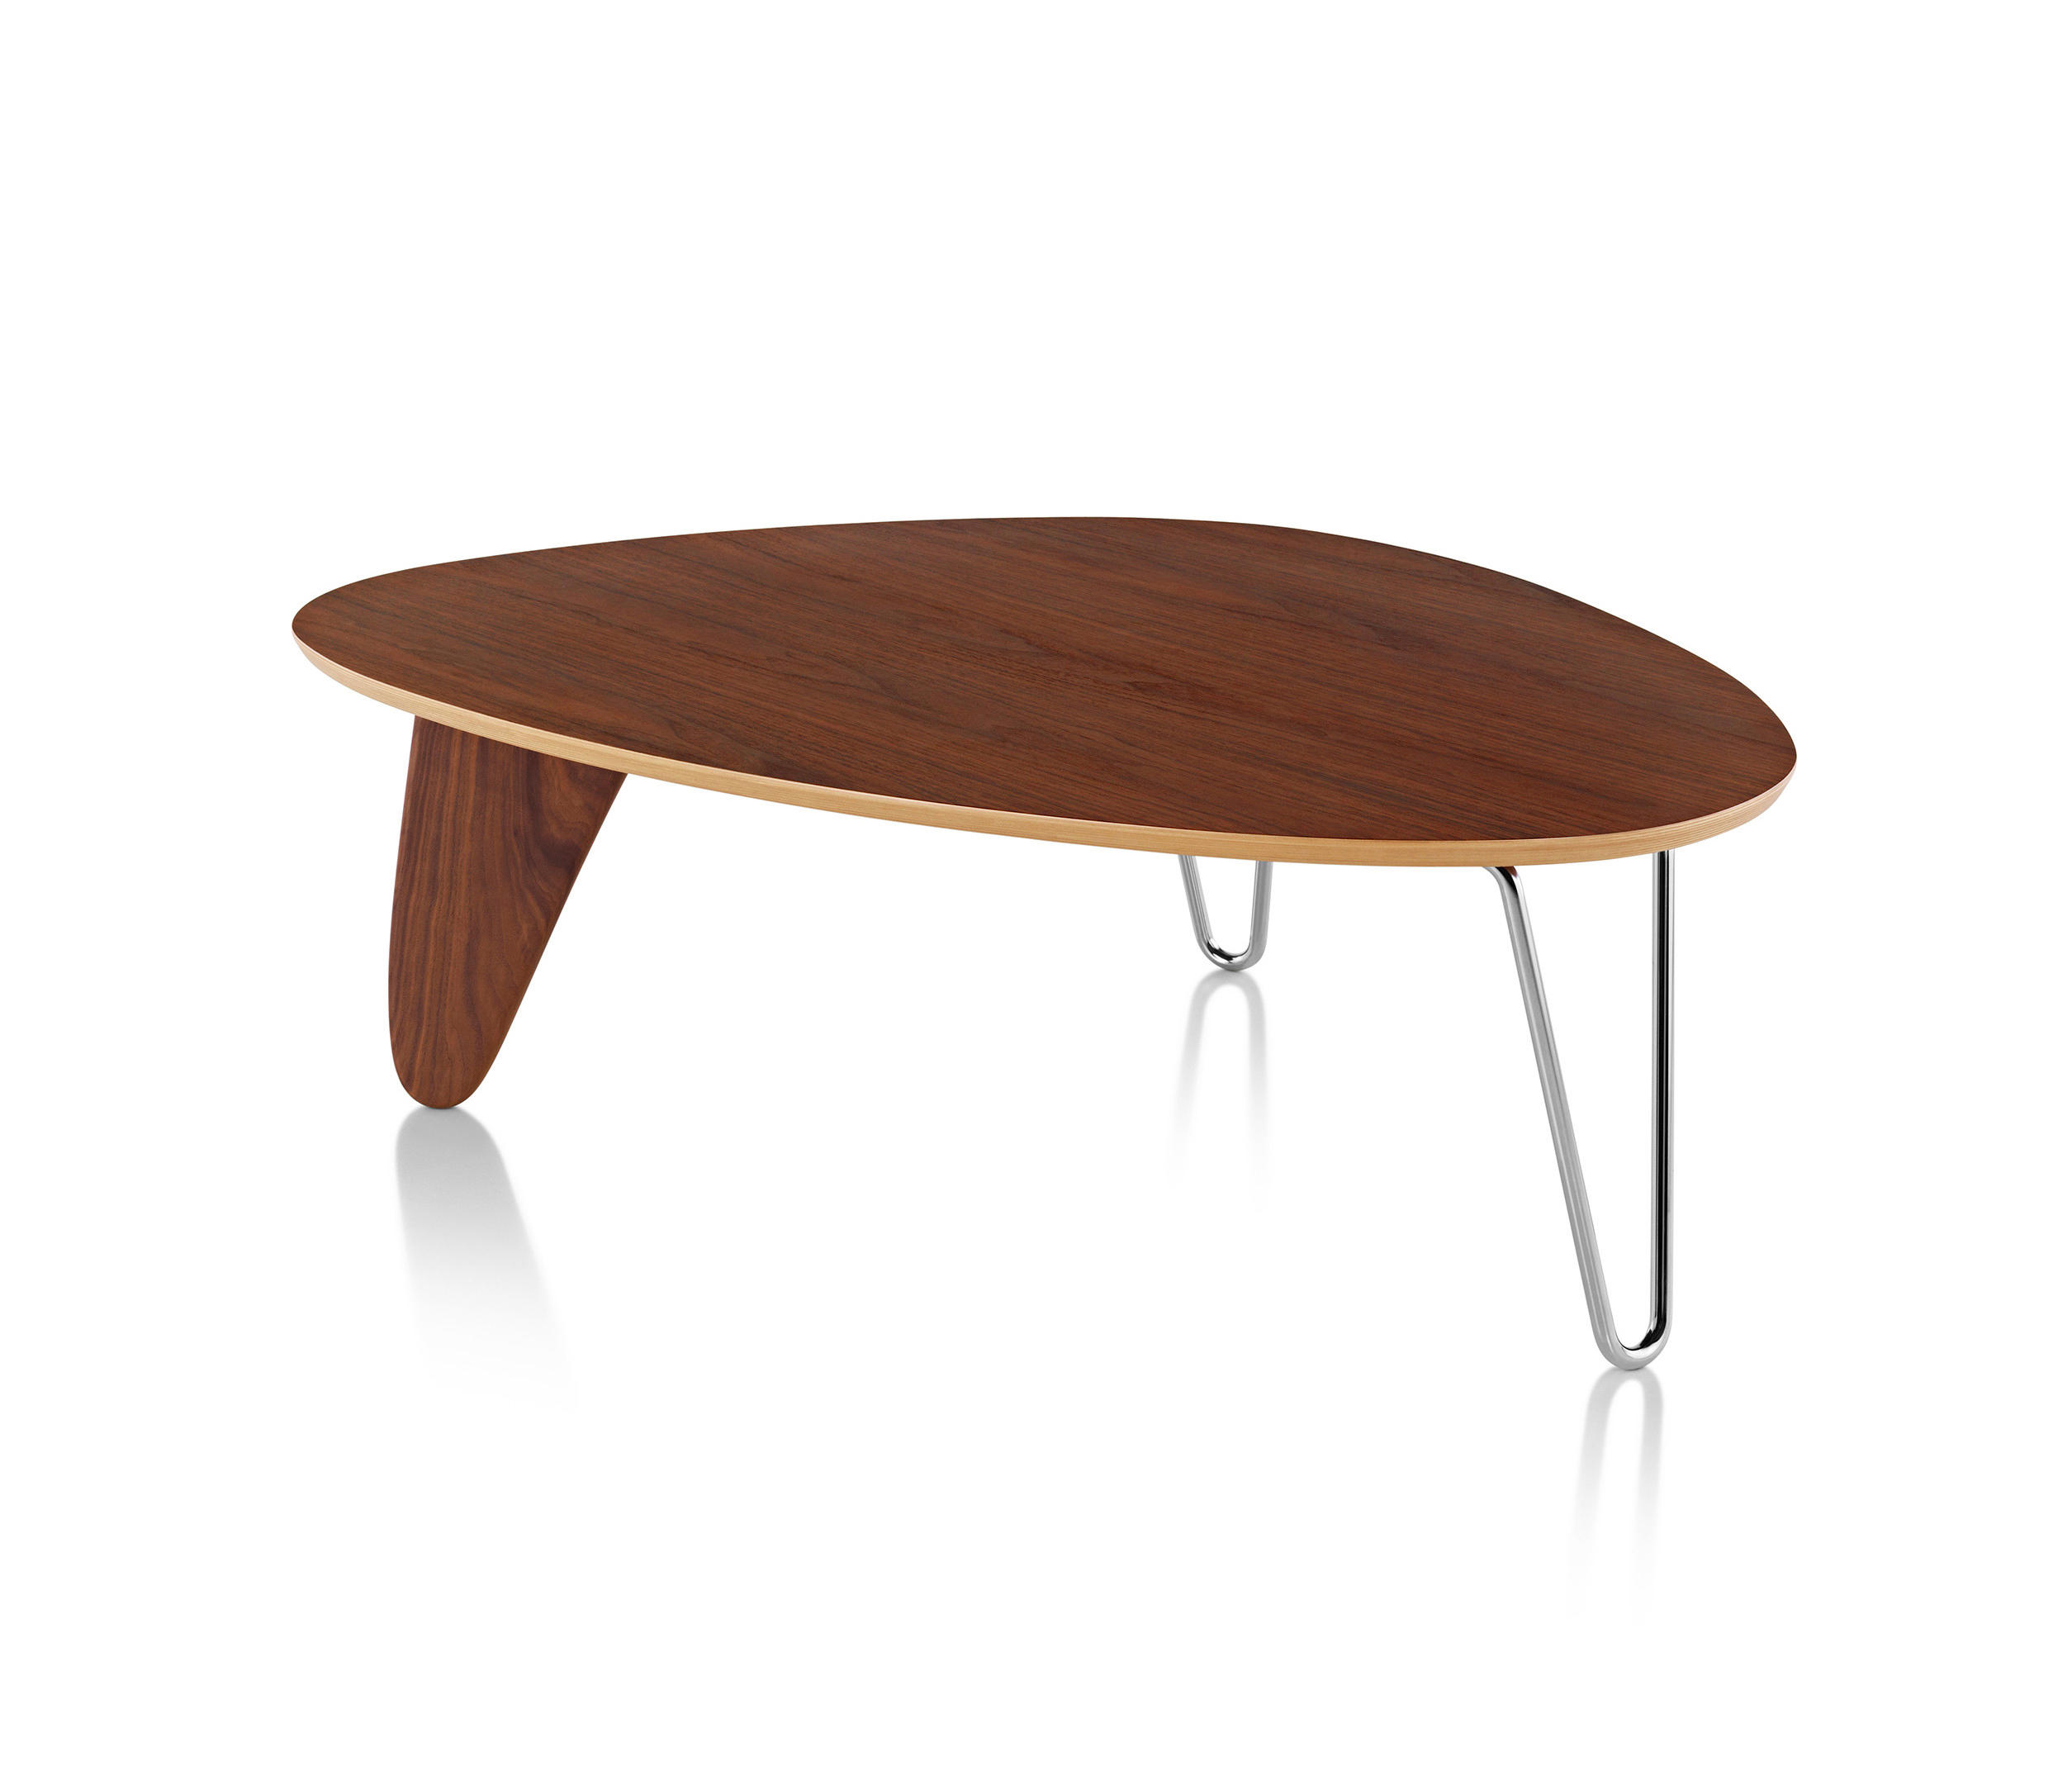 Noguchi Rudder Table Lounge Tables From Herman Miller Architonic: herman miller noguchi coffee table